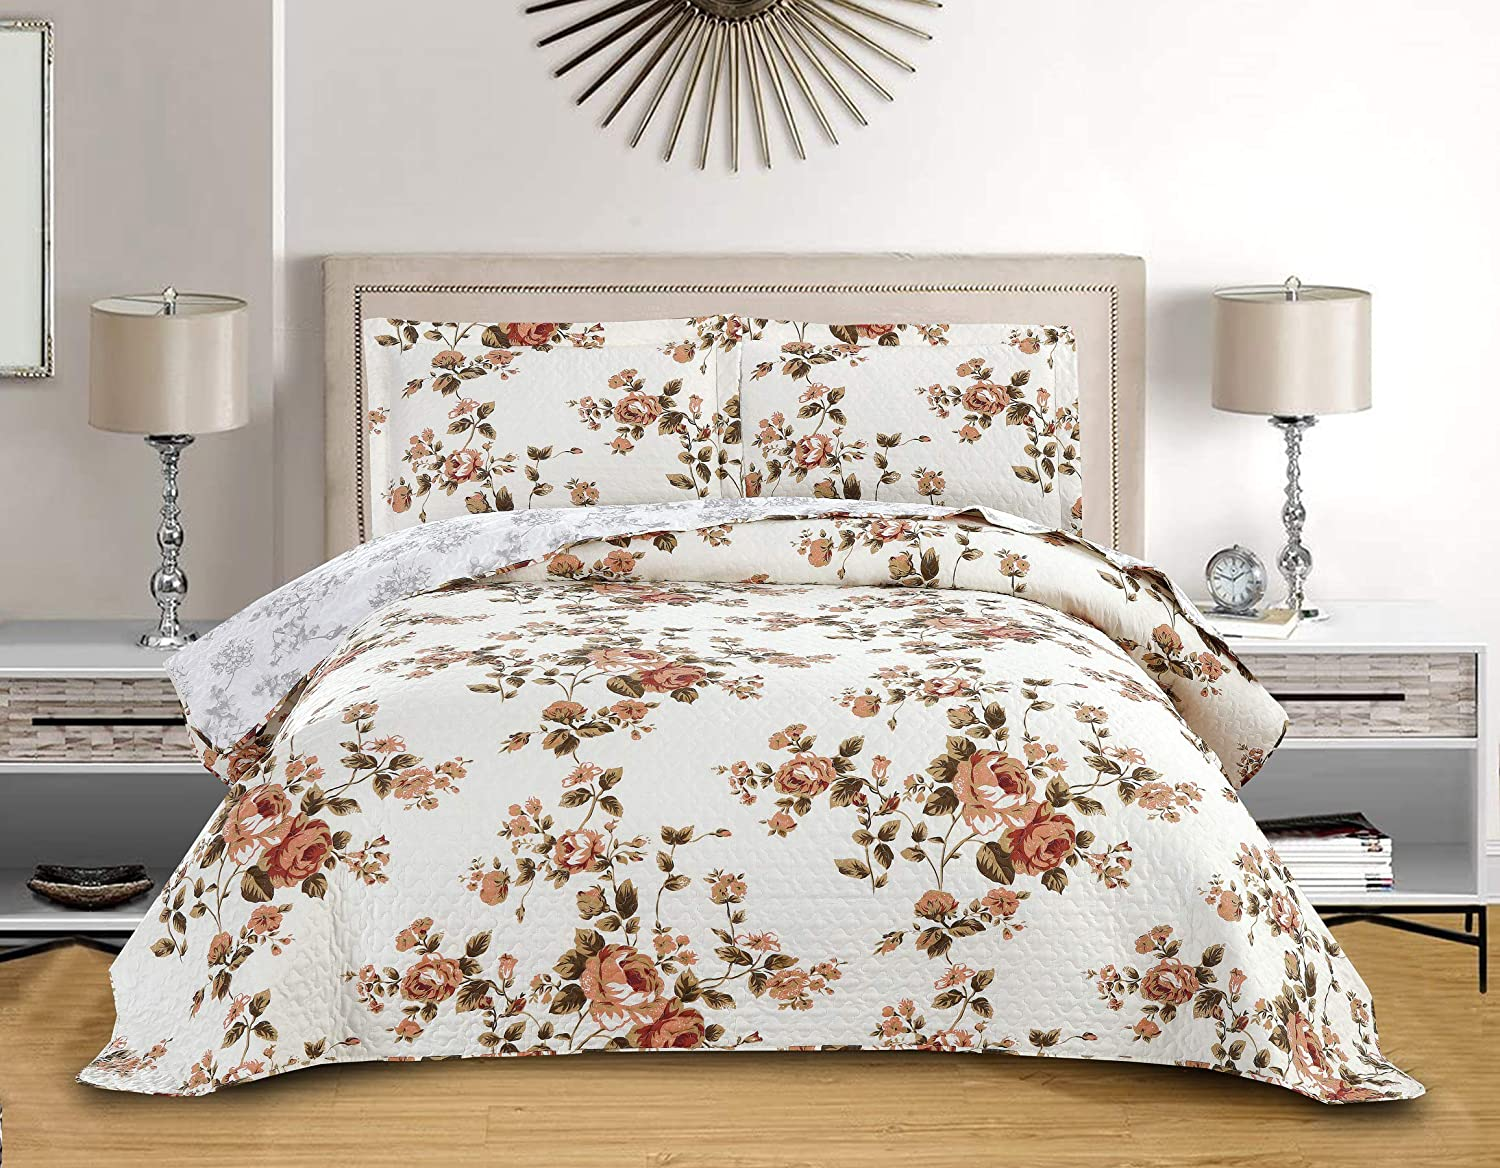 Yc 3-Piece Flower Bedding Rose Floral Quilt Set for Girls Twin Size Floral Bedspread Summer Quilts Comfortable Coverlets Orange Printed Two Pillow Shams